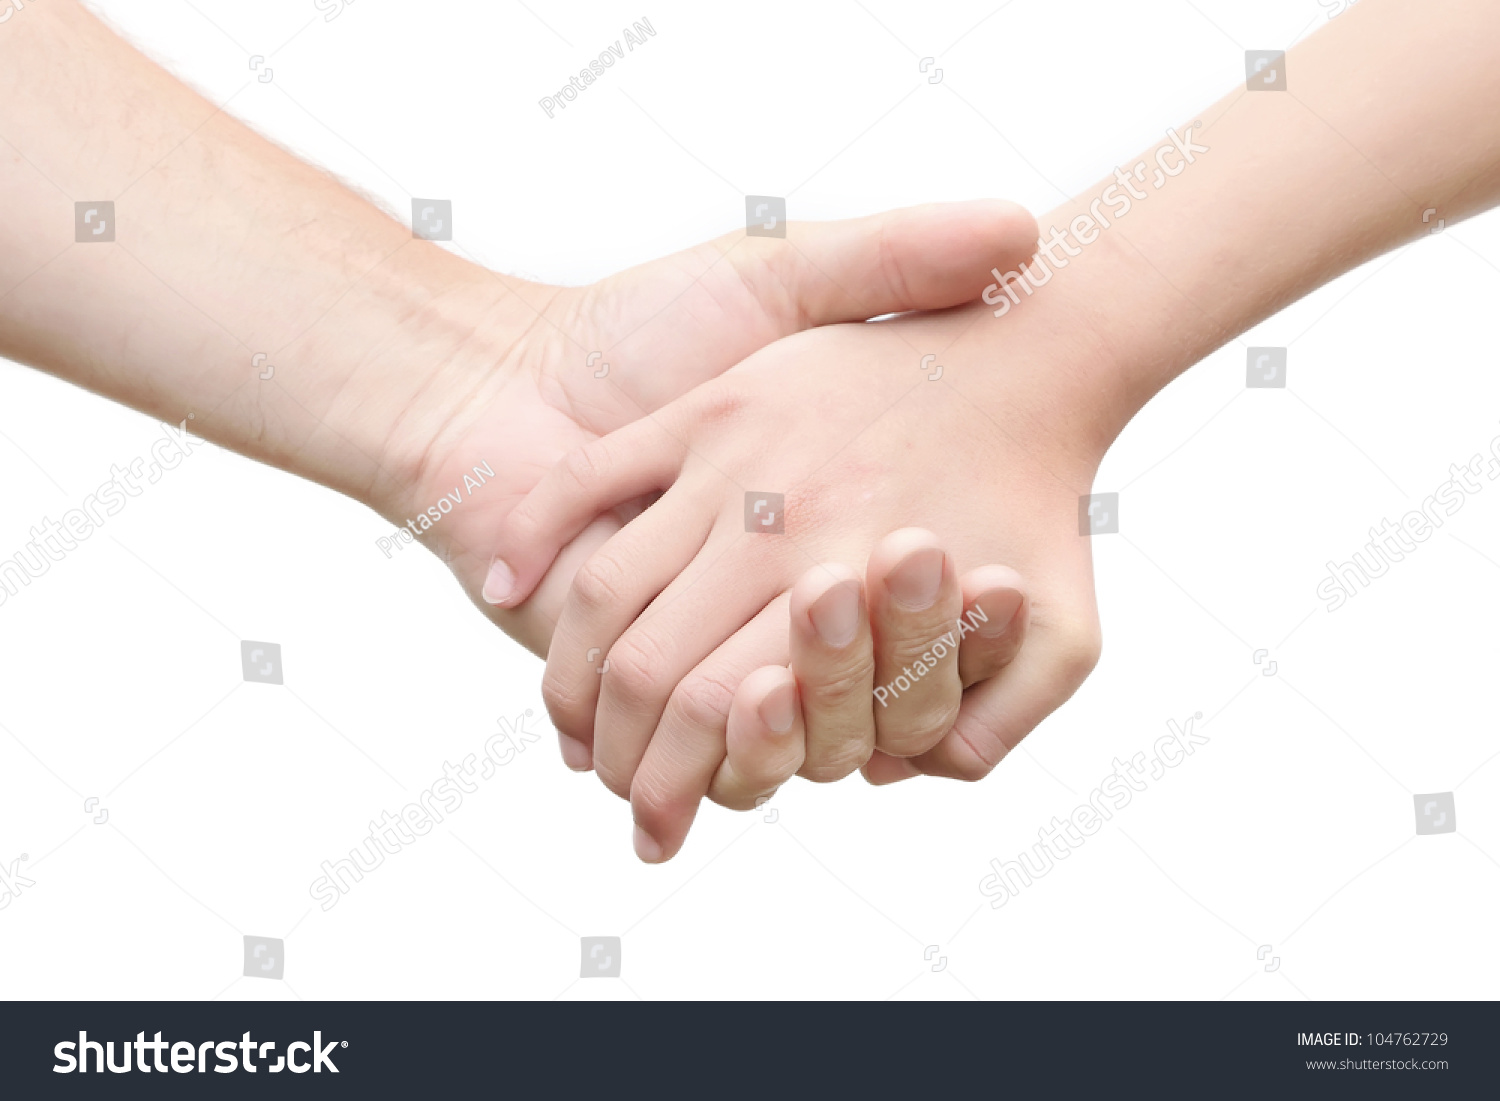 Cute Little Girl And Boy Holding Hands Stock Photo - Image